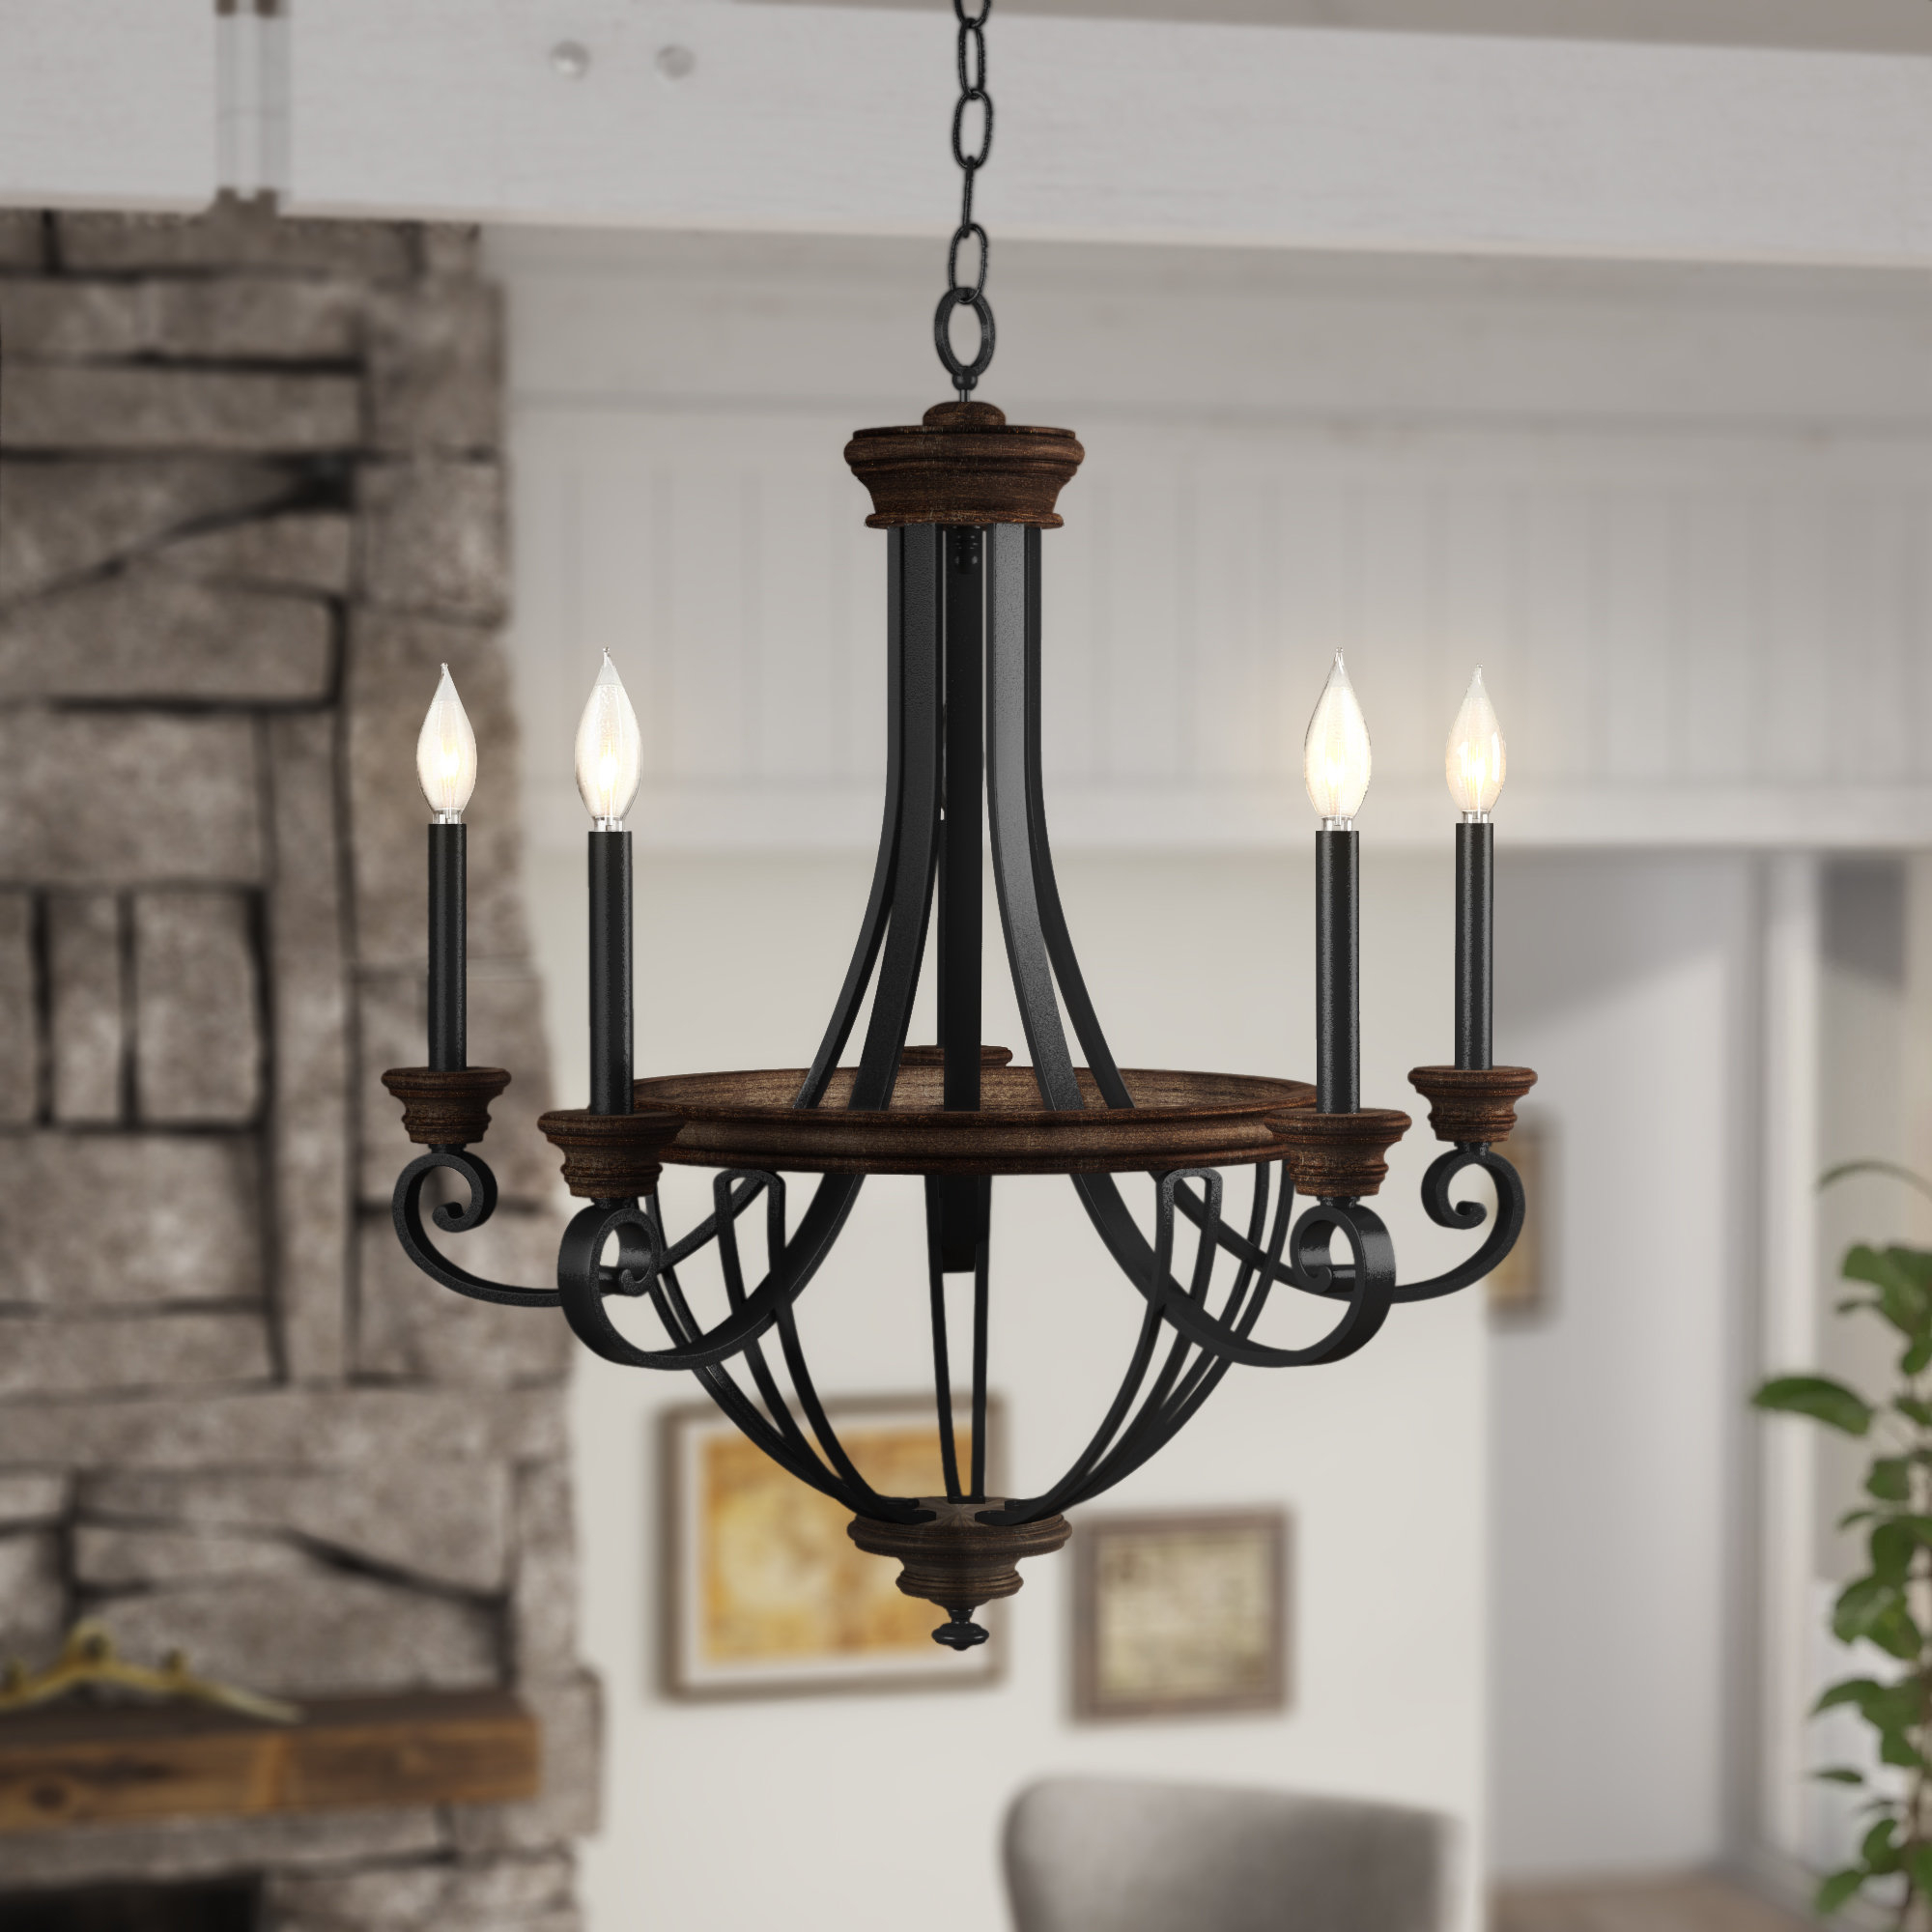 Nanteuil 5-Light Empire Chandelier with regard to Camilla 9-Light Candle Style Chandeliers (Image 23 of 30)